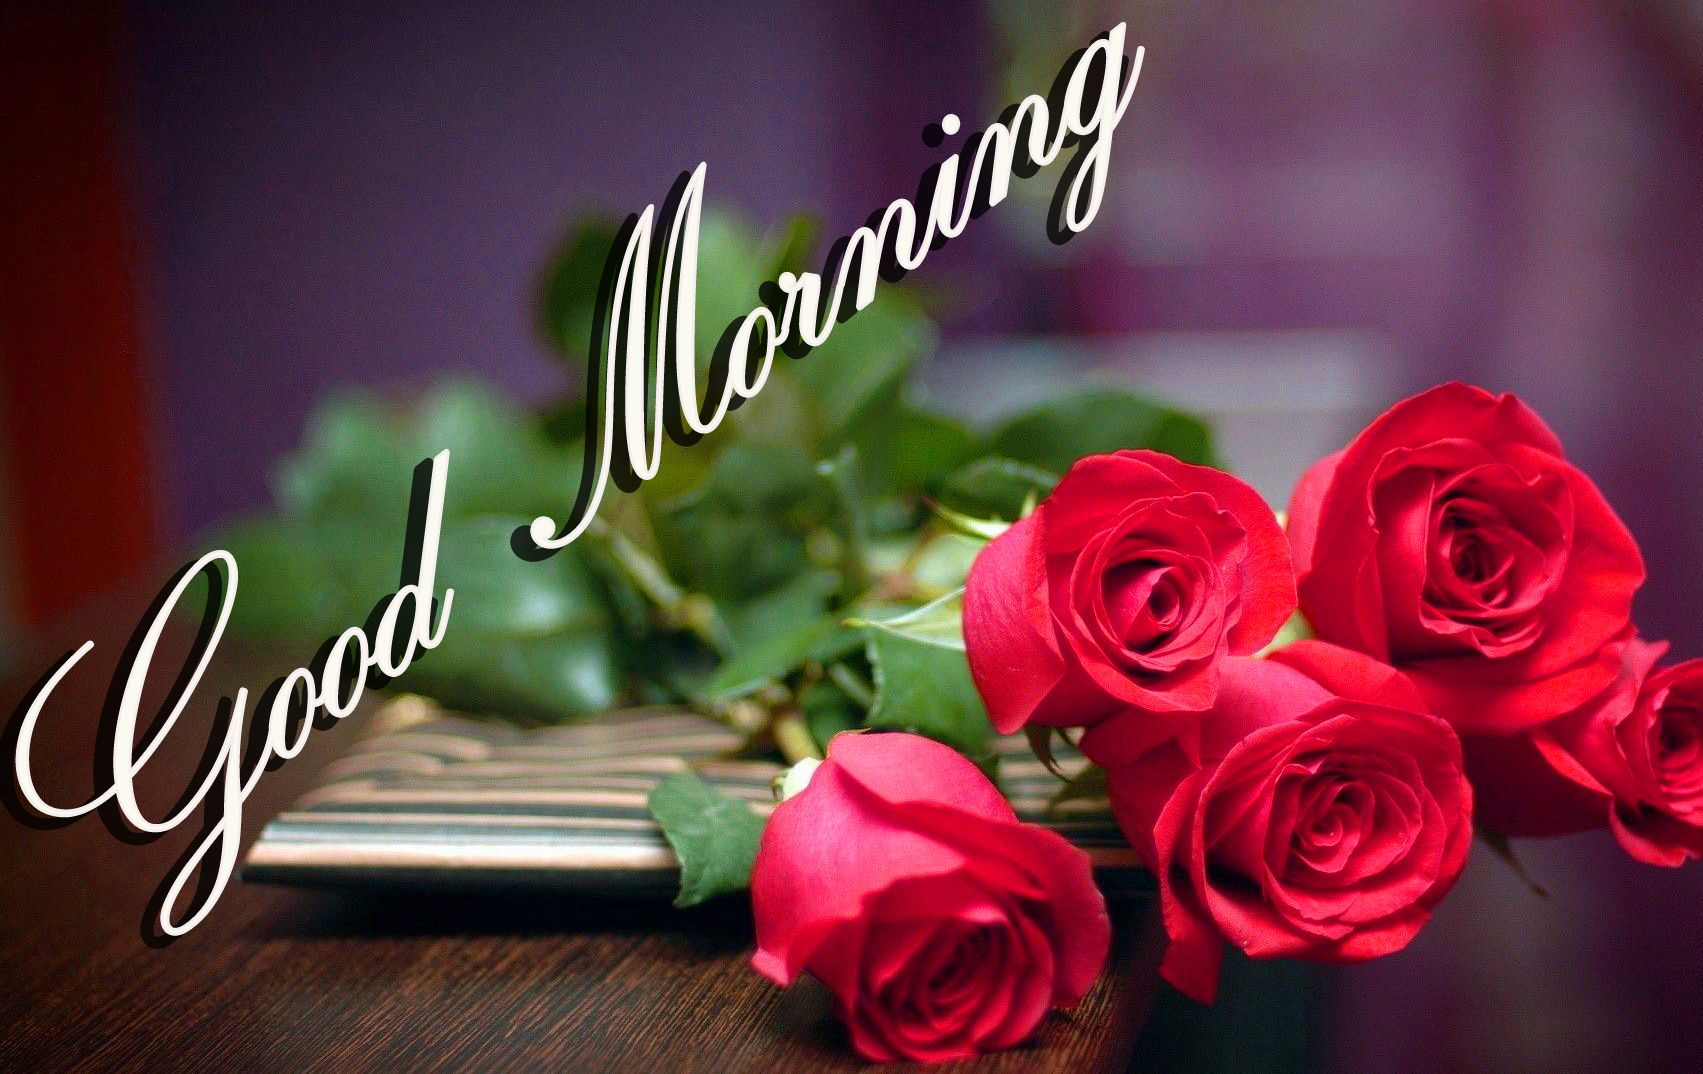 Good Morning Images Pics Wallpaper Pictures Hd Free Download Share With Friend Good Morning Wallpaper Good Morning Images Good Morning Roses